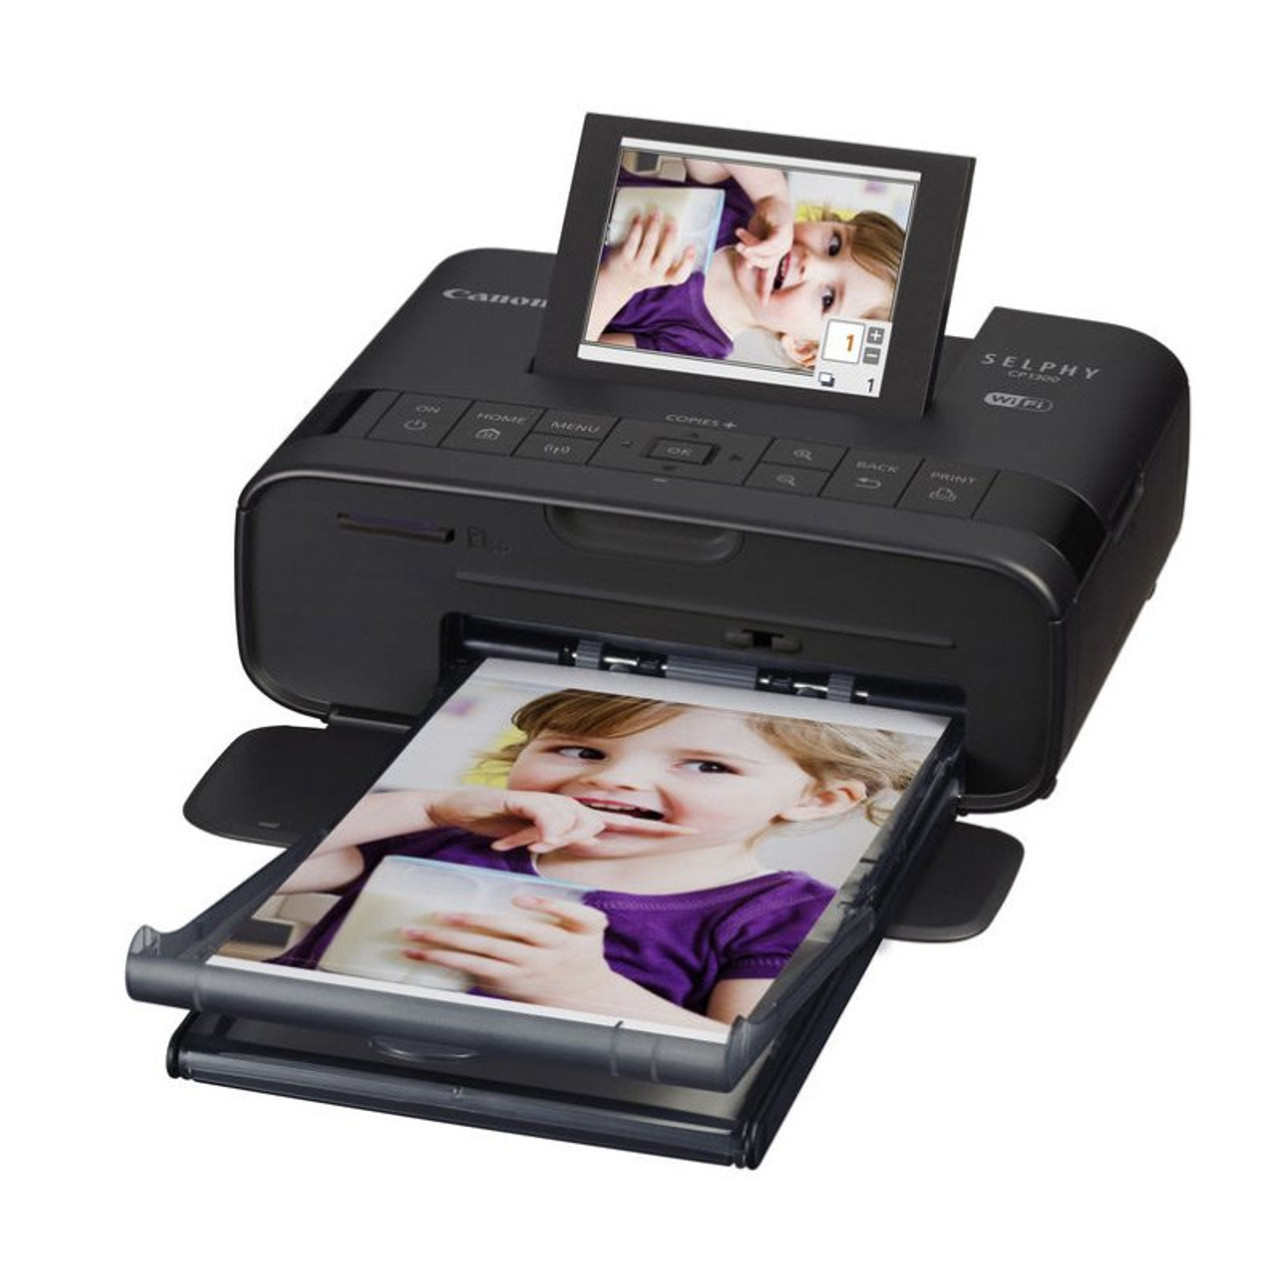 Canon SELPHY CP1300 Wireless Compact Photo Printer with AirPrint